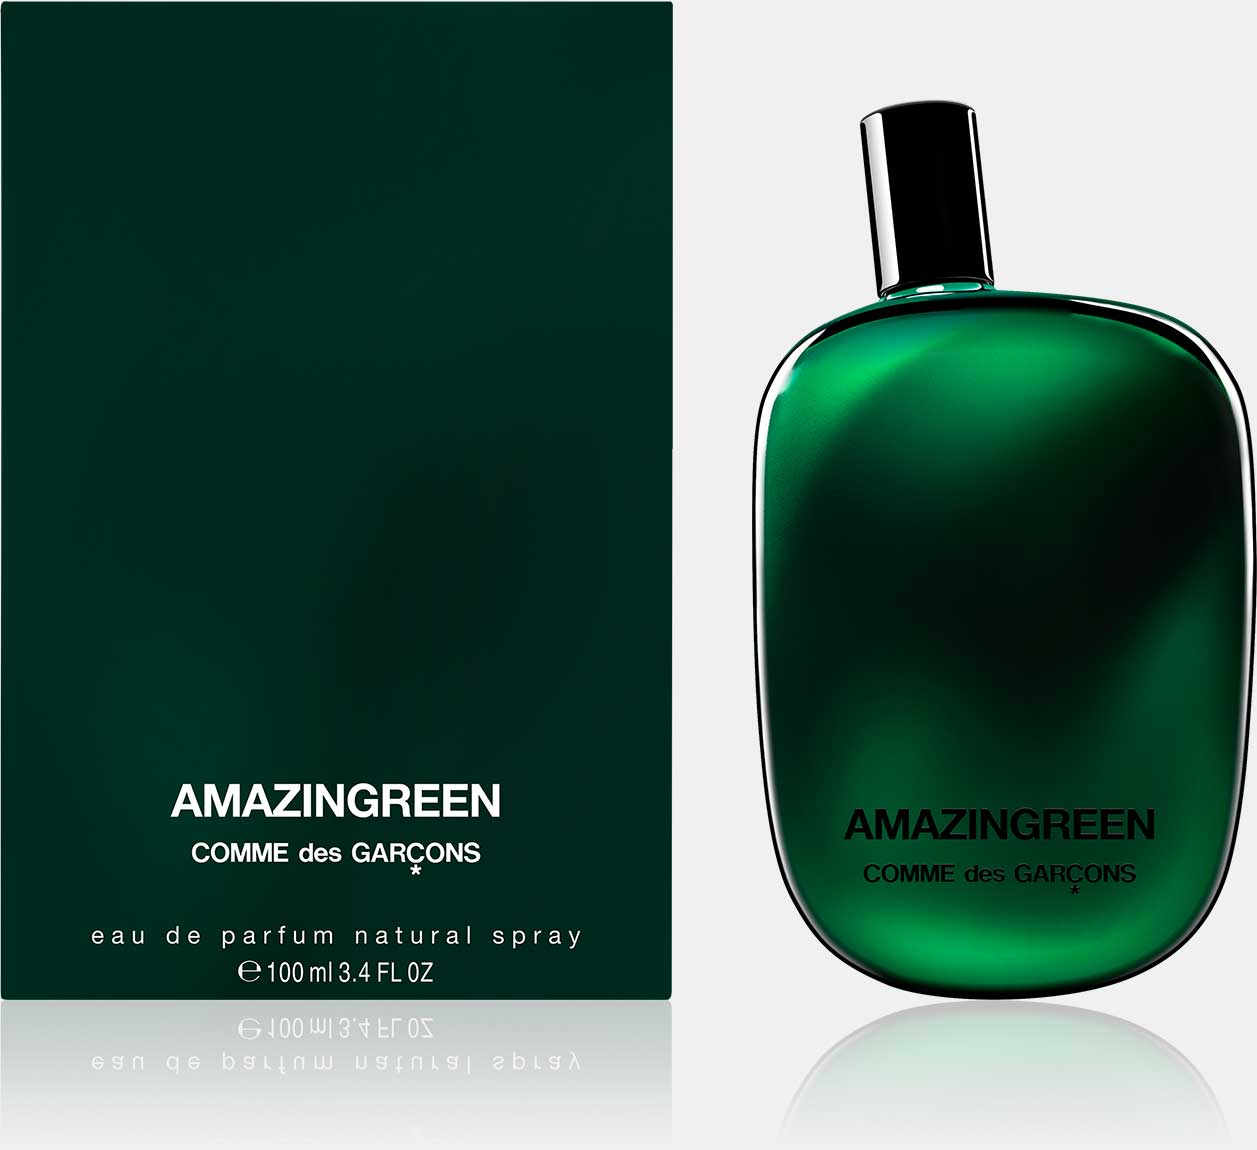 Amazingreen - Eau de Parfum (50 ml / 100 ml natural spray)